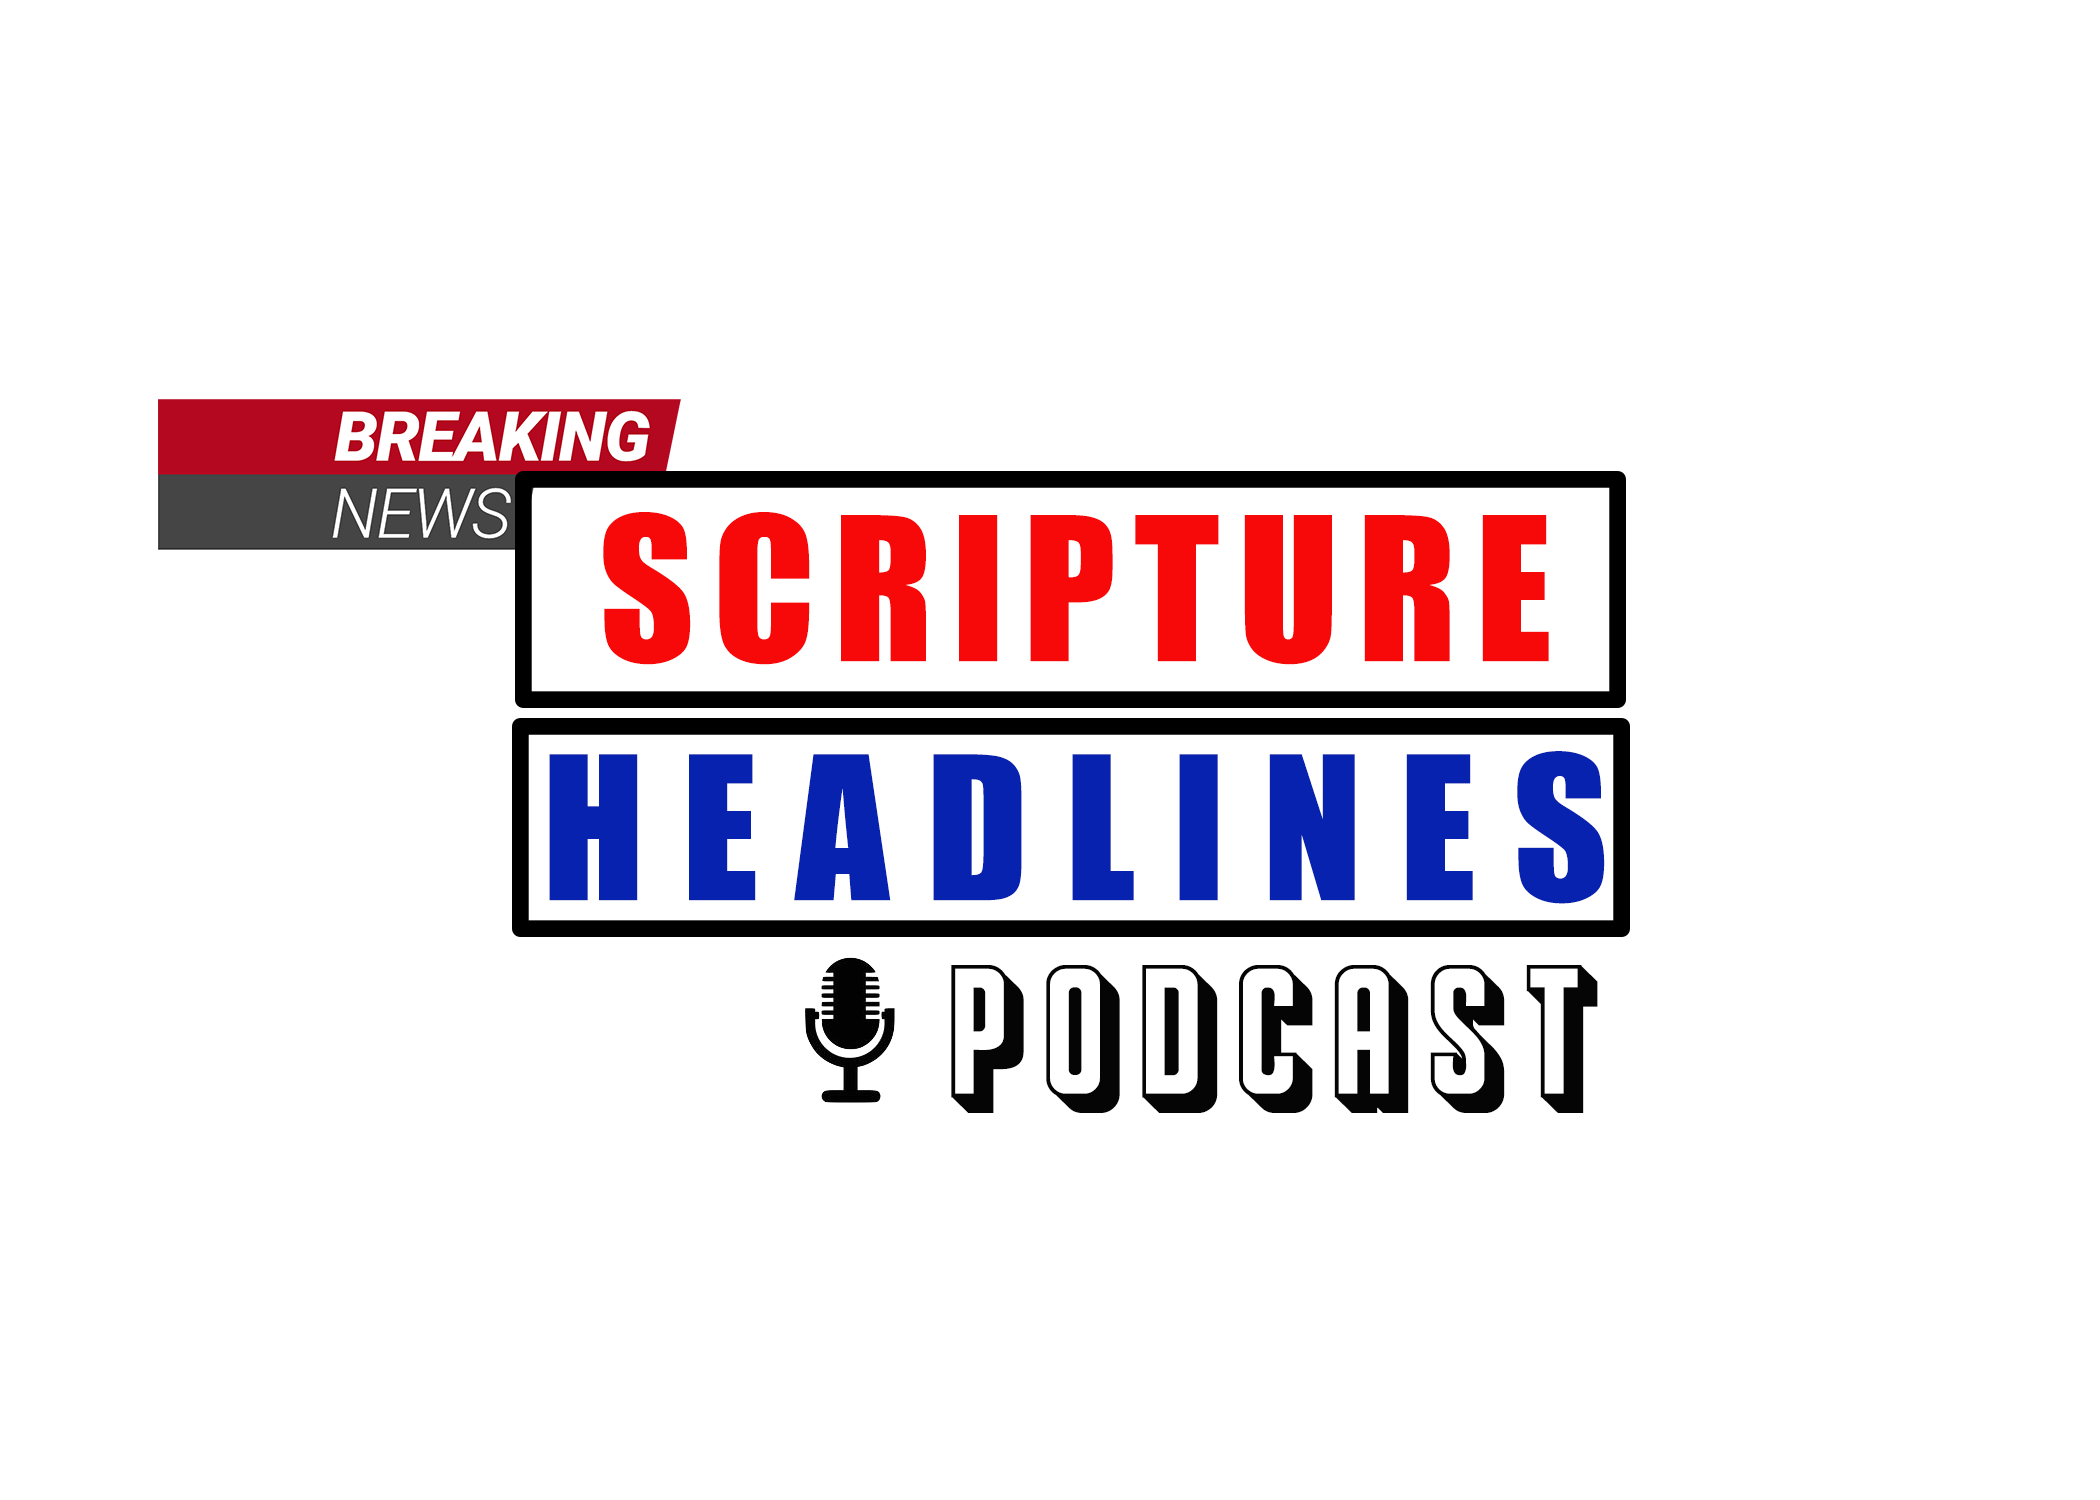 scriptureheadlinespodcast